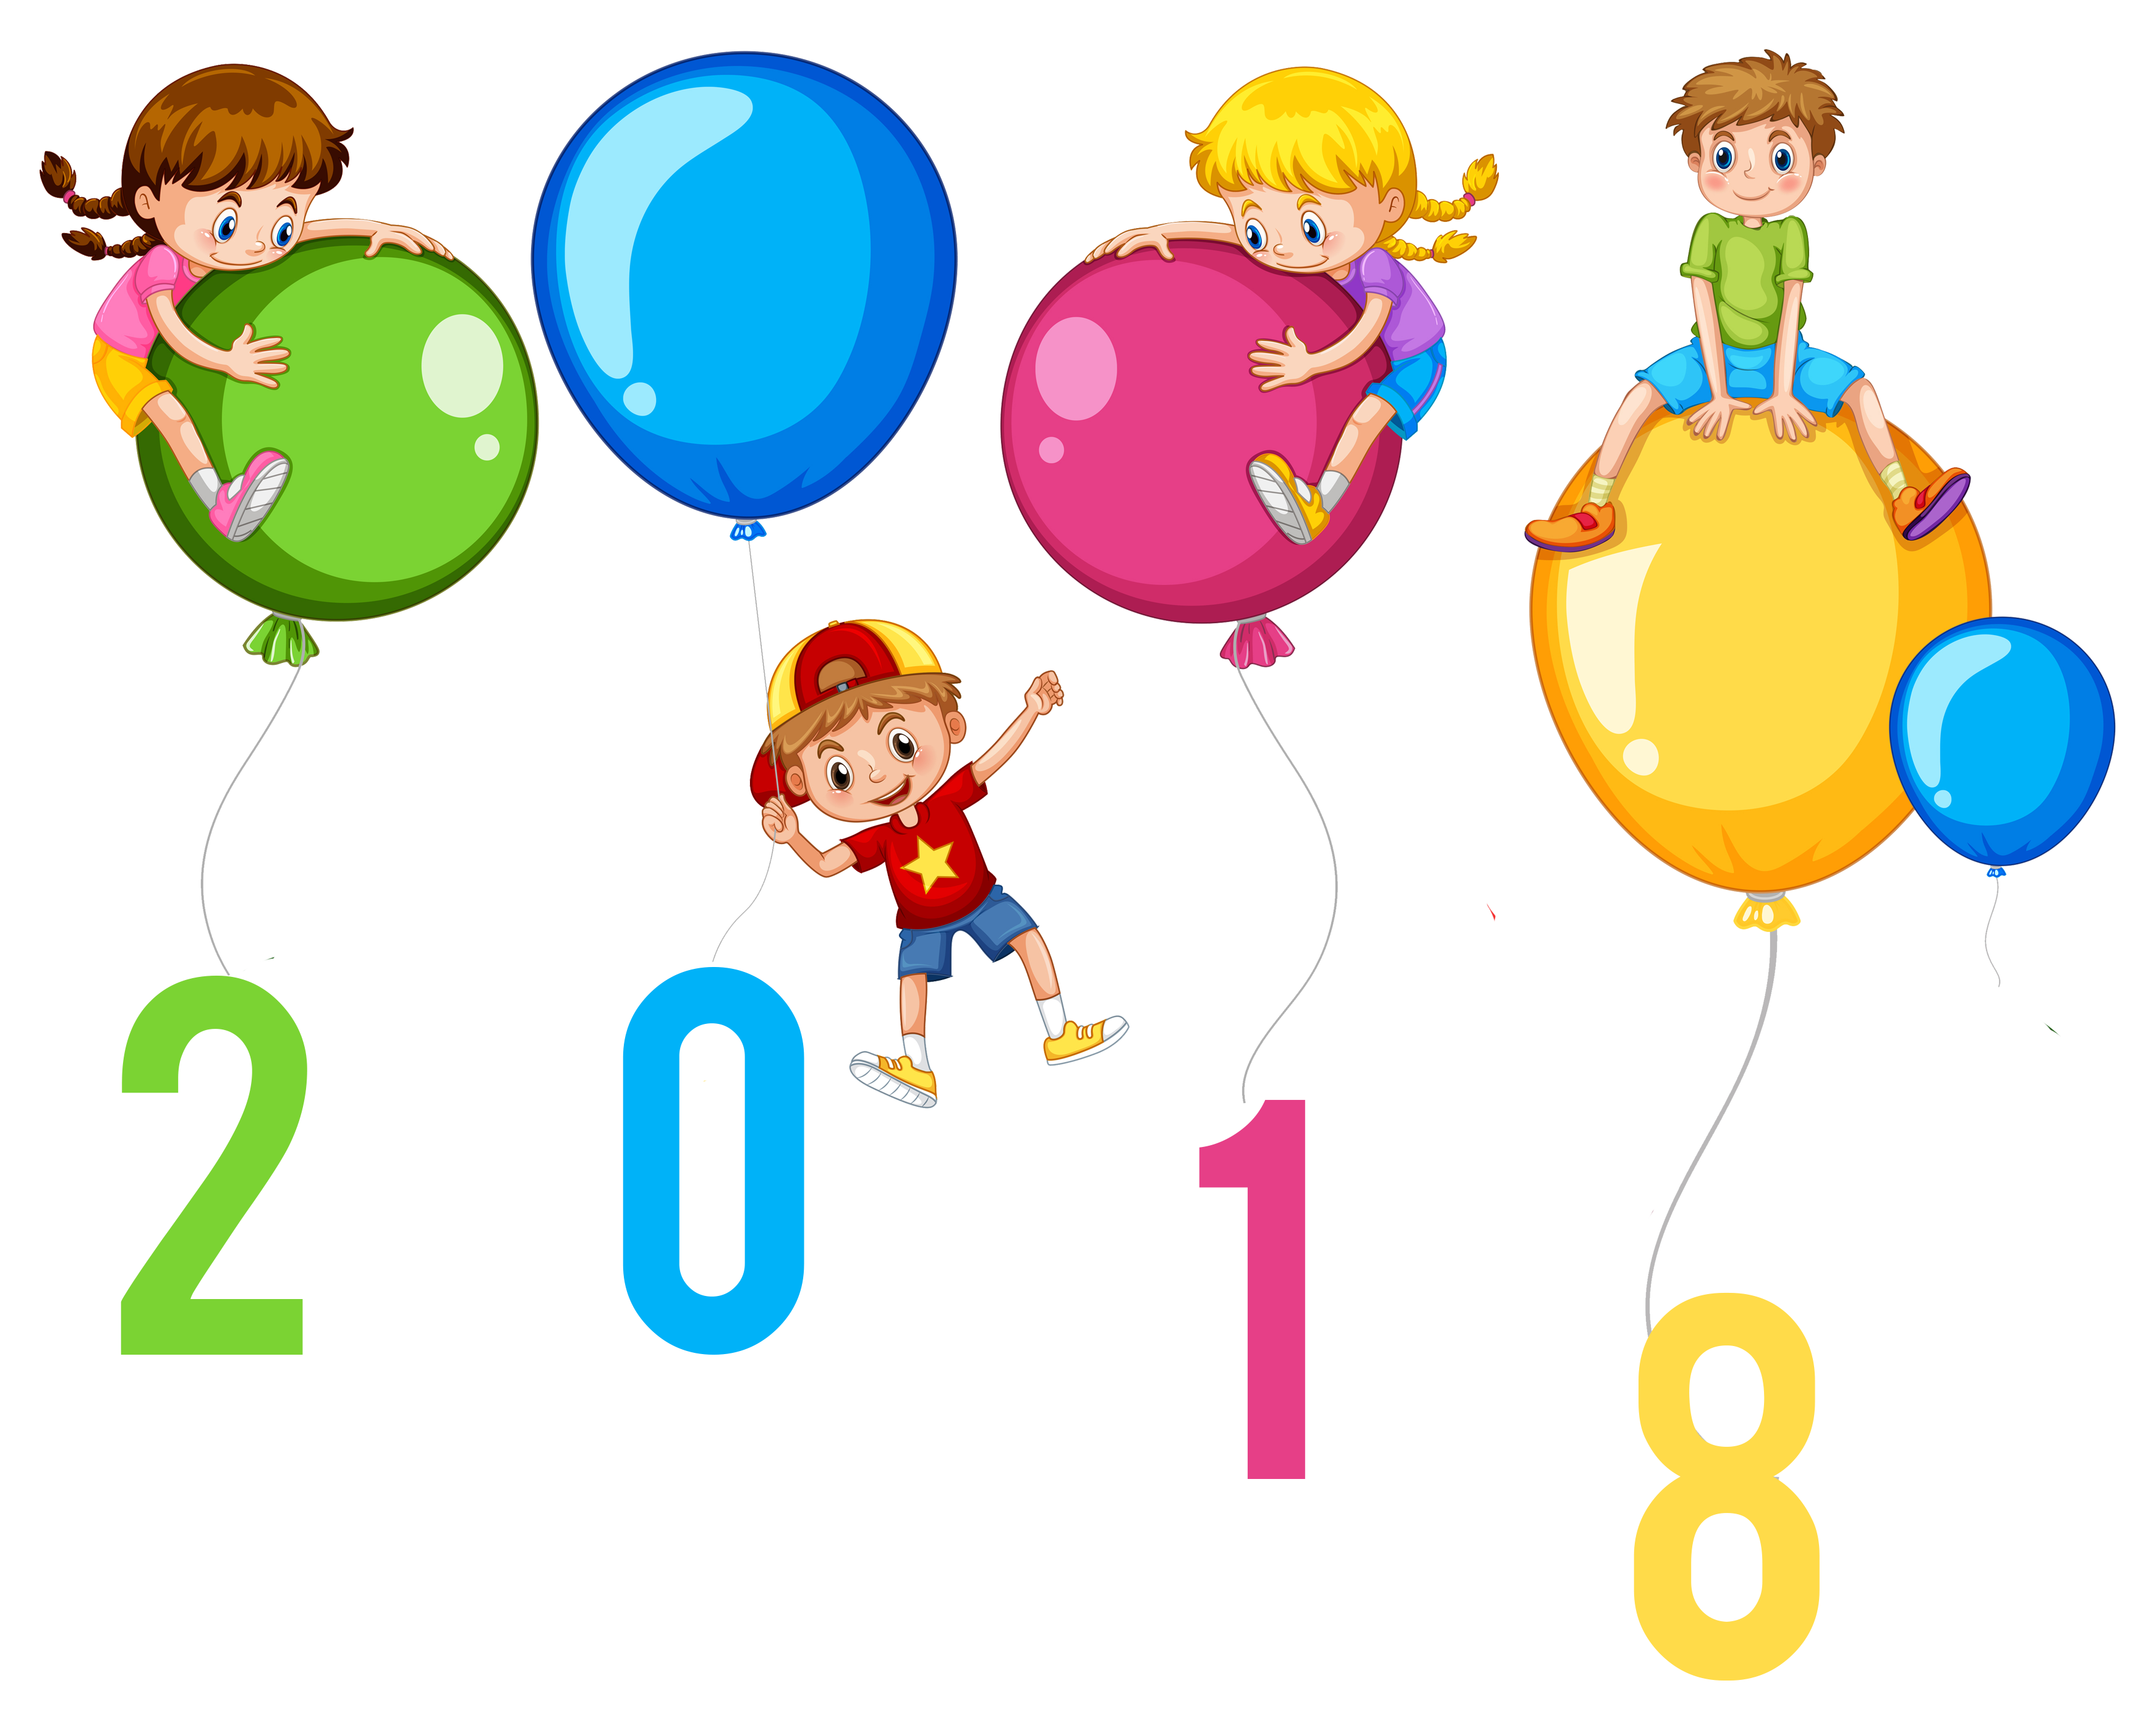 happy new year 2018 kids with balloons clip art image happy new rh pinterest co uk happy new year clipart 2017 happy new year clip art free